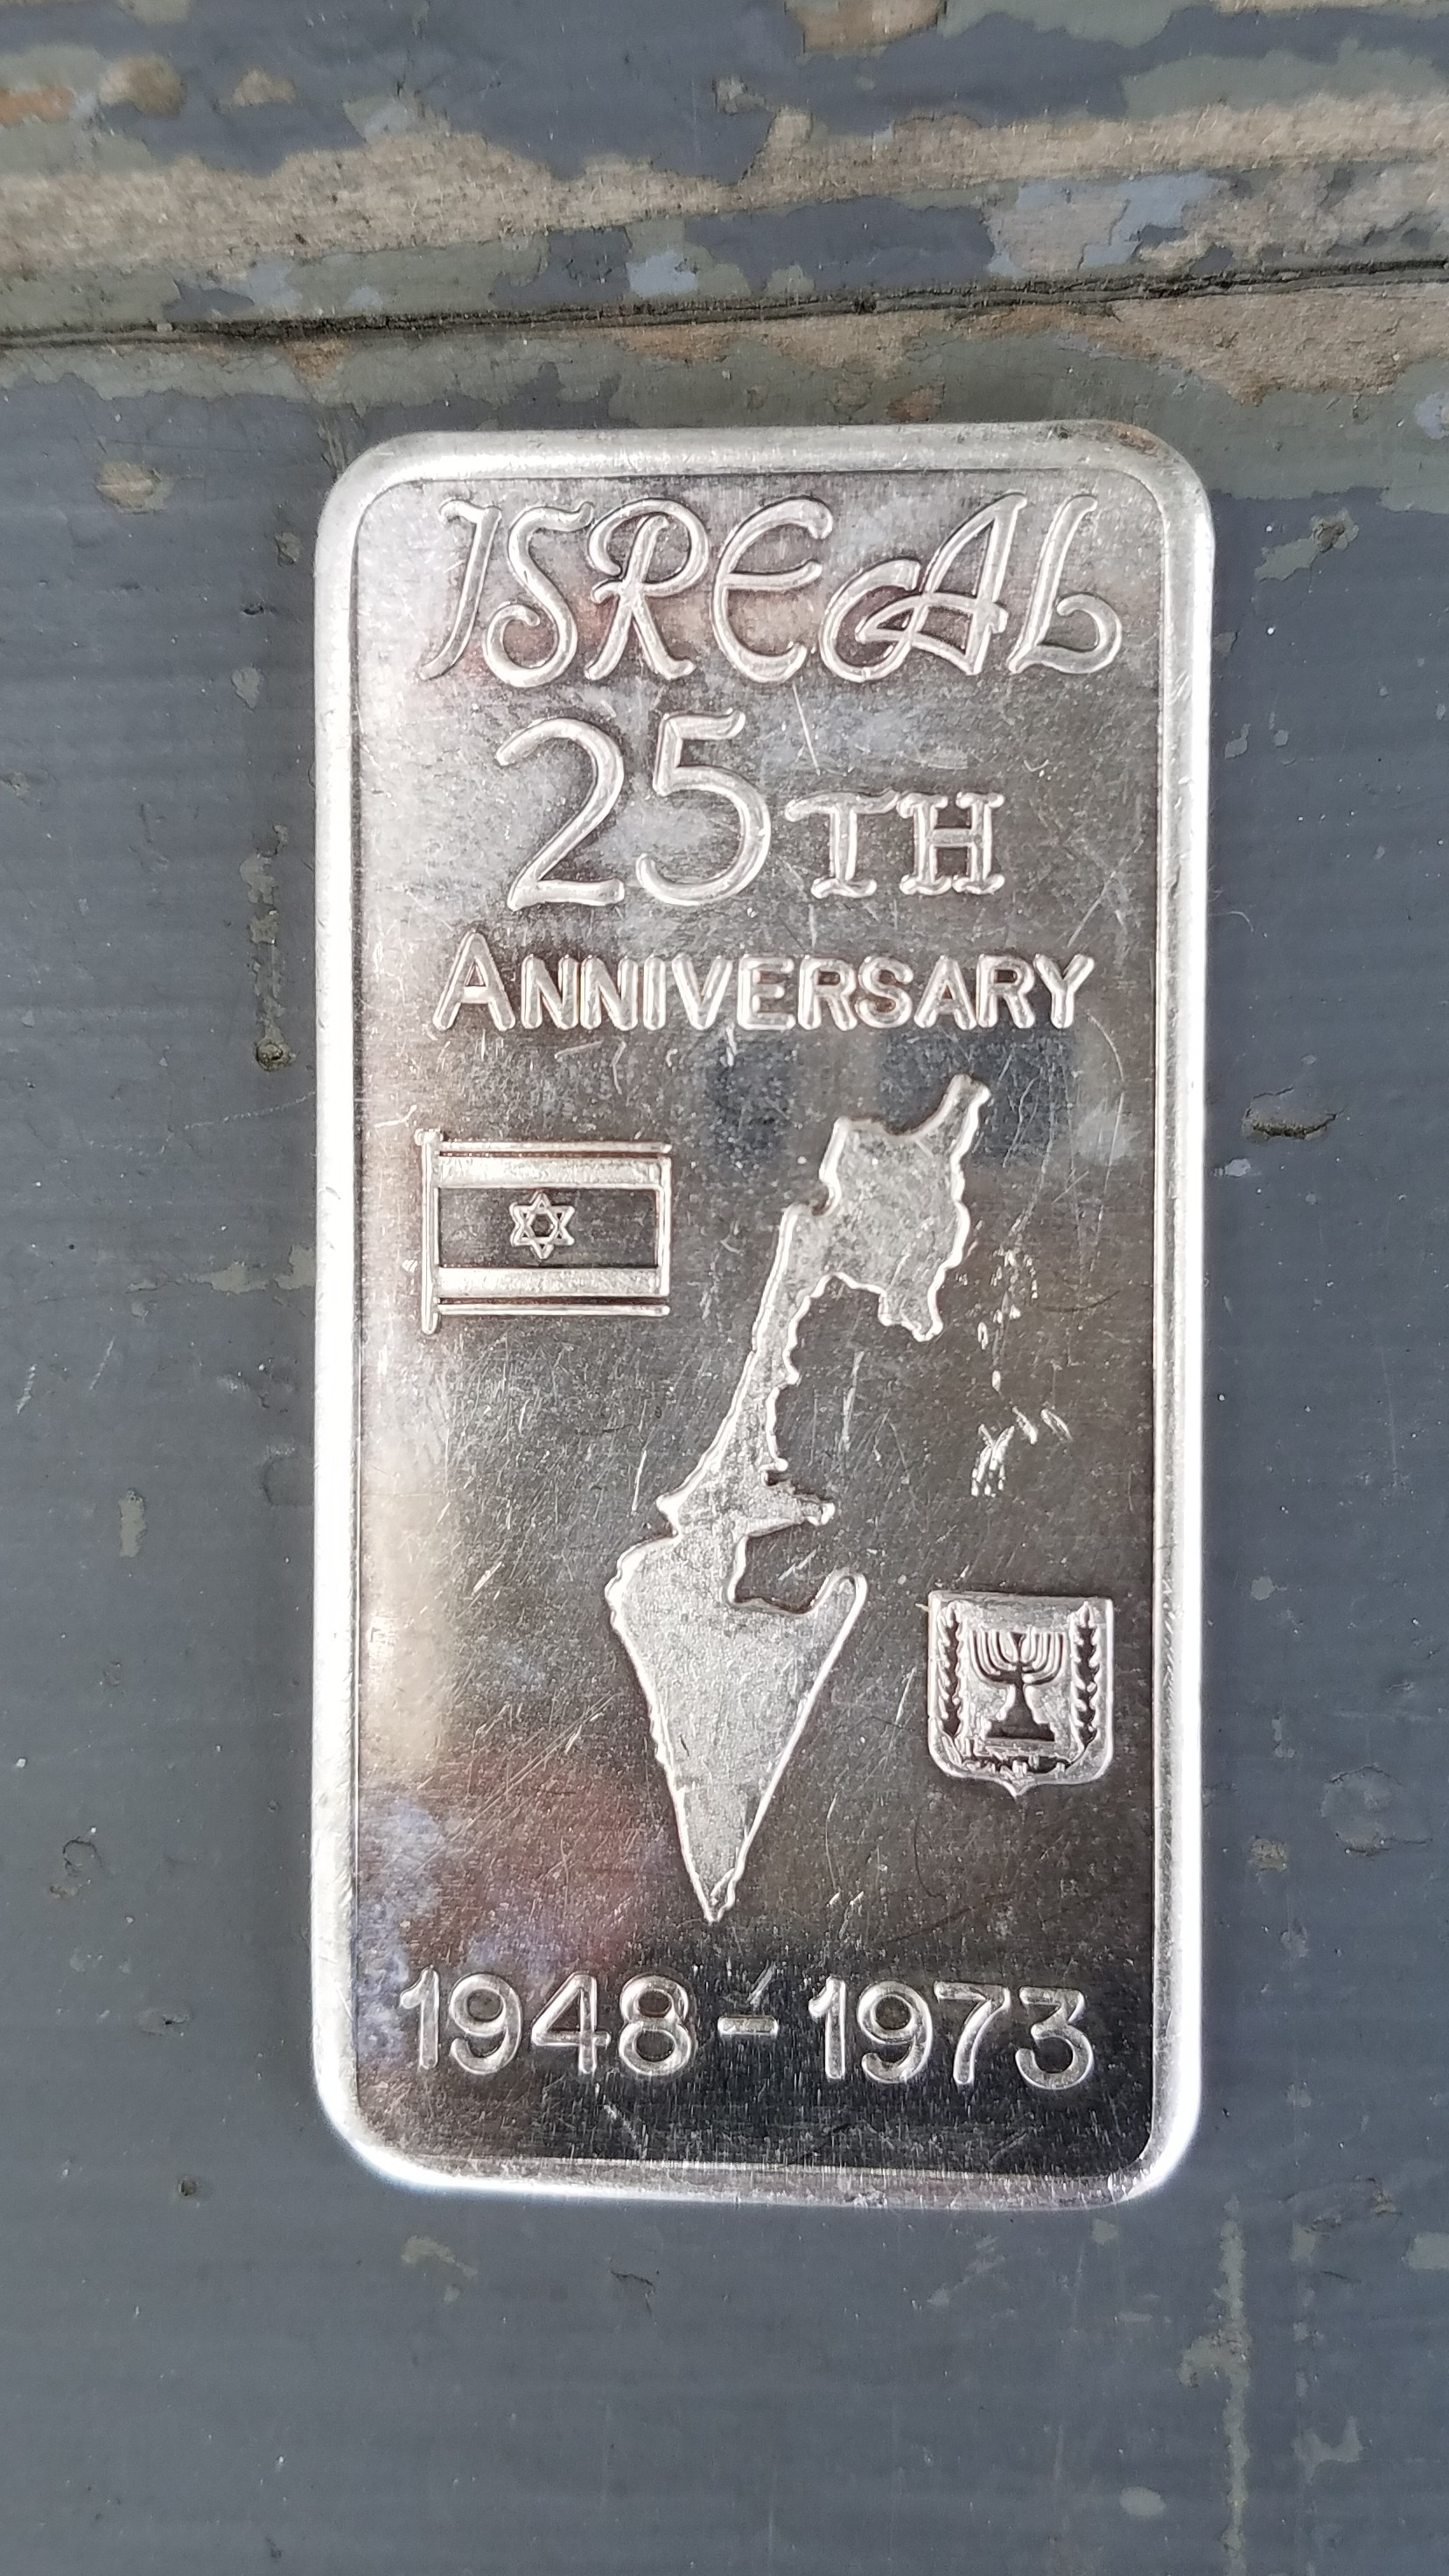 VINTAGE SILVER<br /> ONE TROY OUNCE<br /> .999 FINE SILVER<br /> ISREAL 25TH ANNIVERSARY<br /> 1948 - 1975